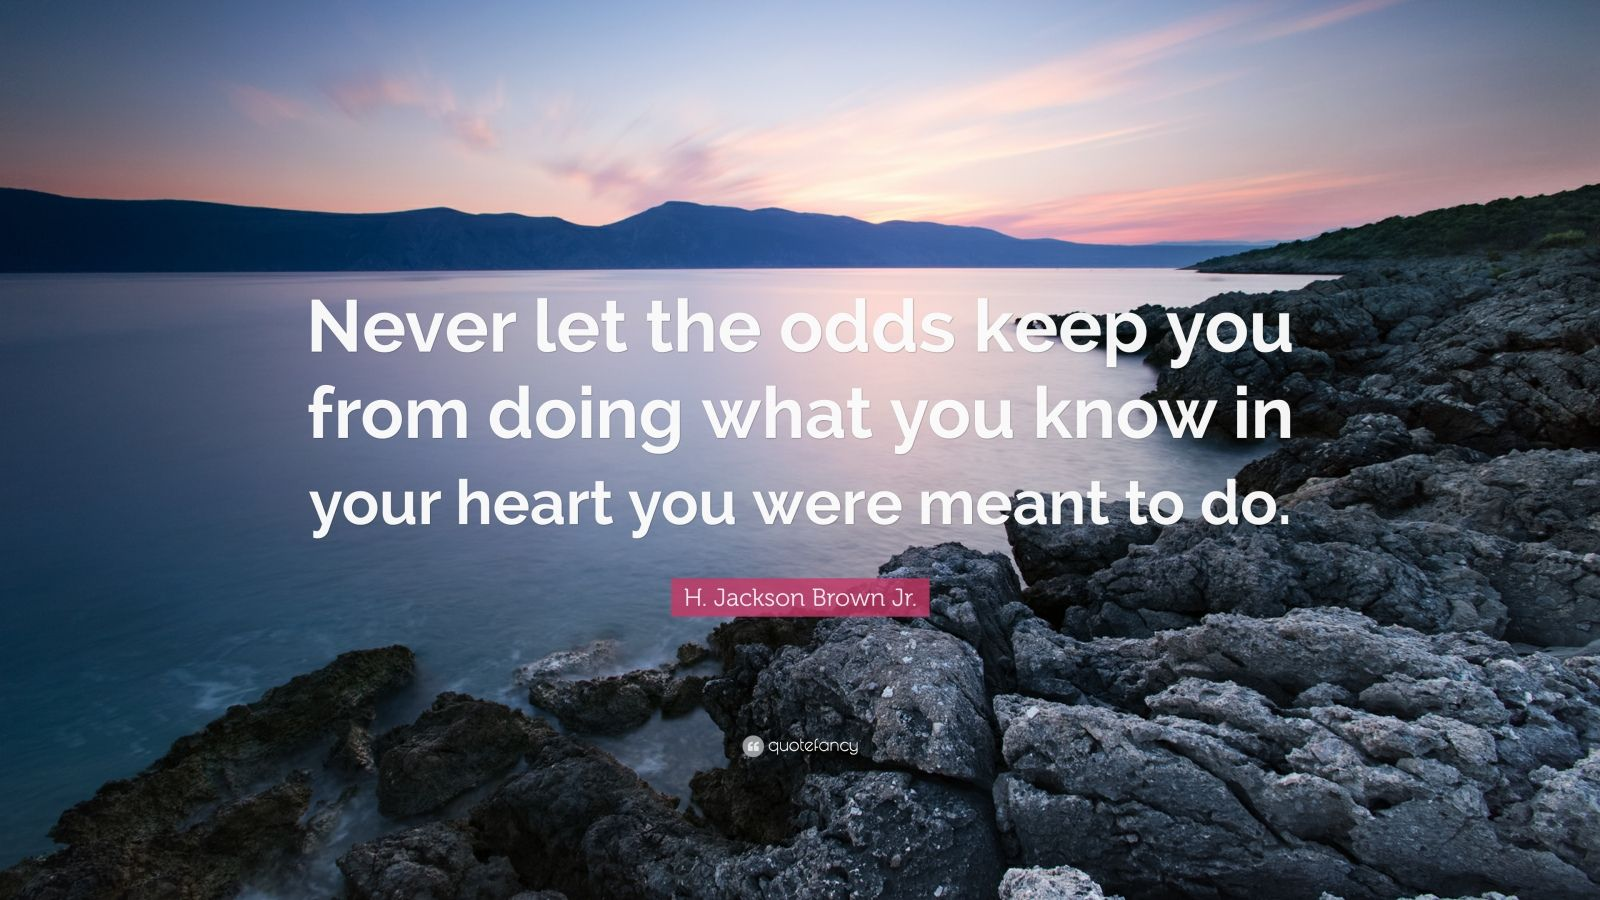 """H. Jackson Brown Jr. Quote: """"Never let the odds keep you from doing what you know in your heart you were meant to do."""""""